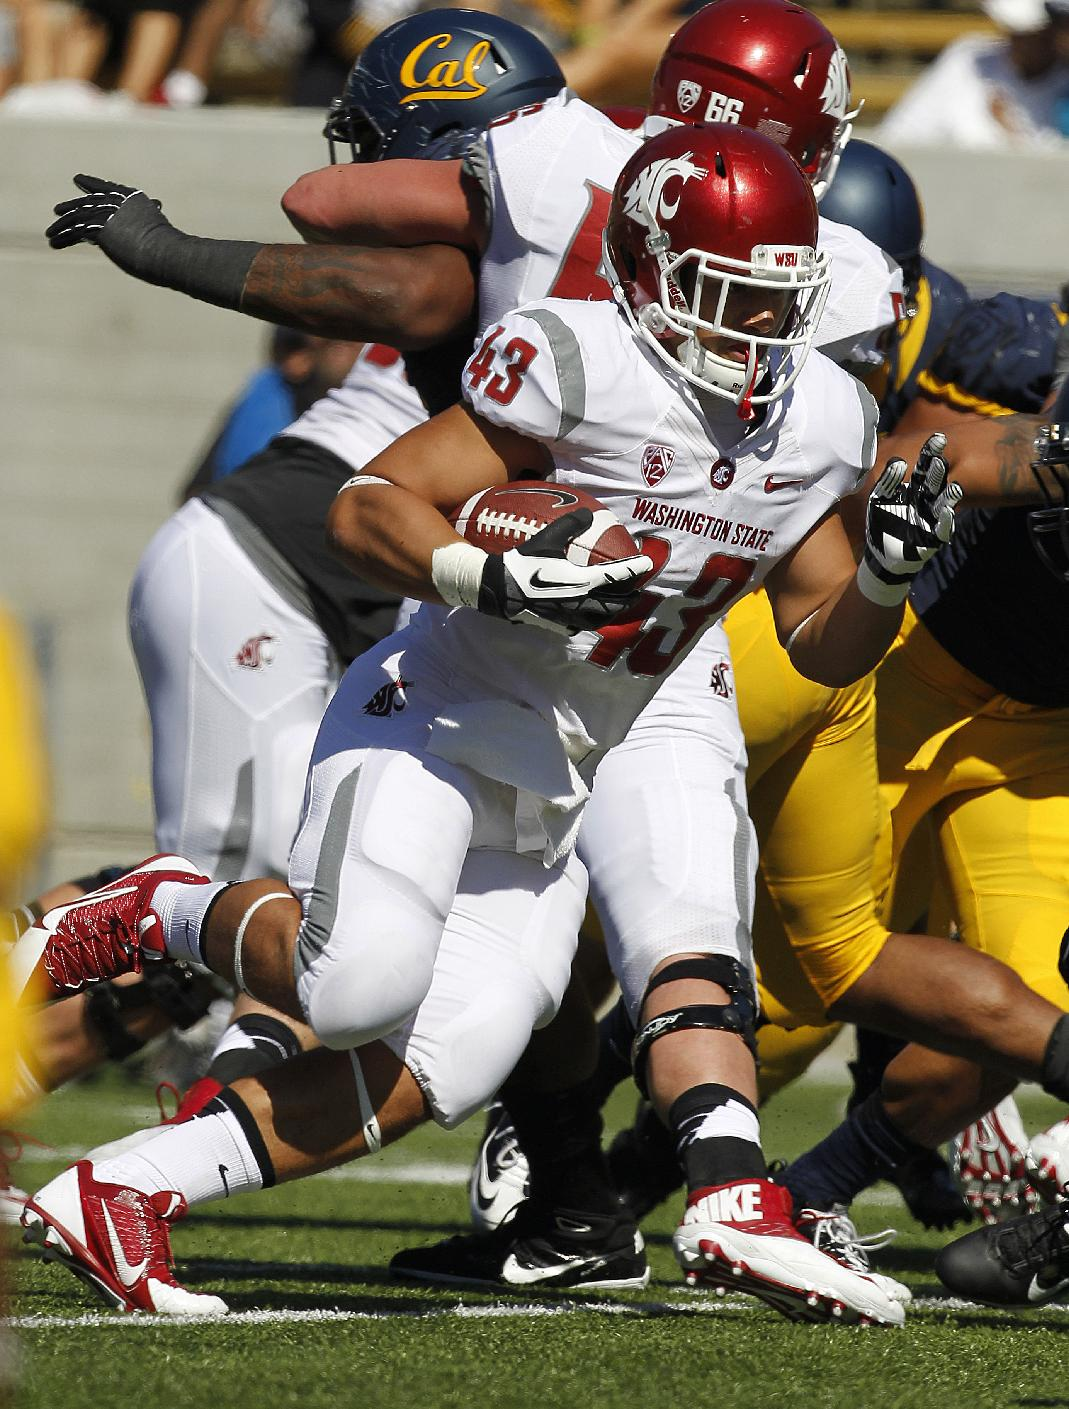 Washington State running back Jeremiah Laufasa (43) runs for a touchdown against California during the first half of an NCAA college football game in Berkeley, Calif., Saturday, Oct. 5, 2013